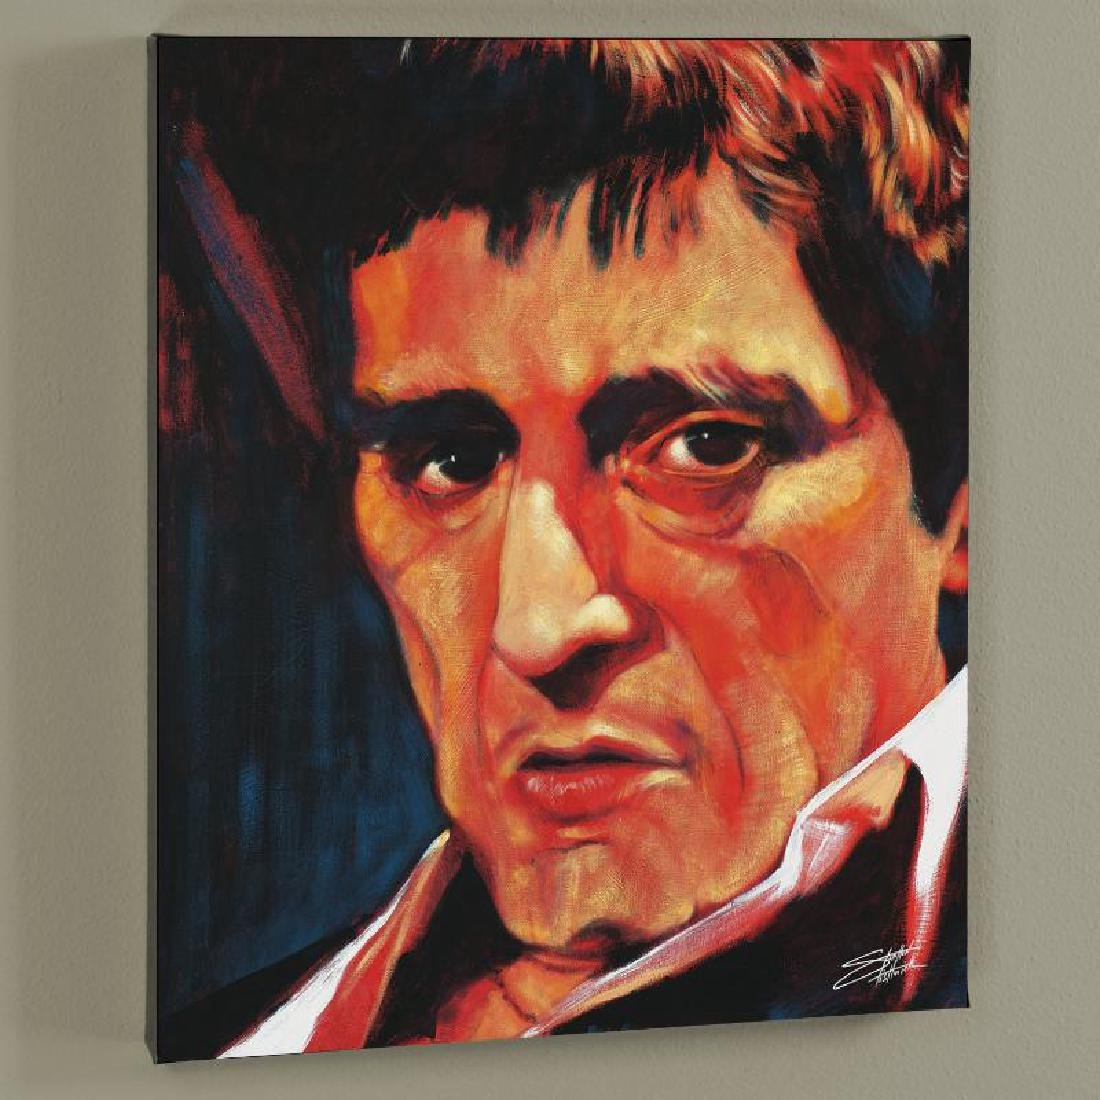 """Pacino"" Limited Edition Giclee on Canvas by Stephen"